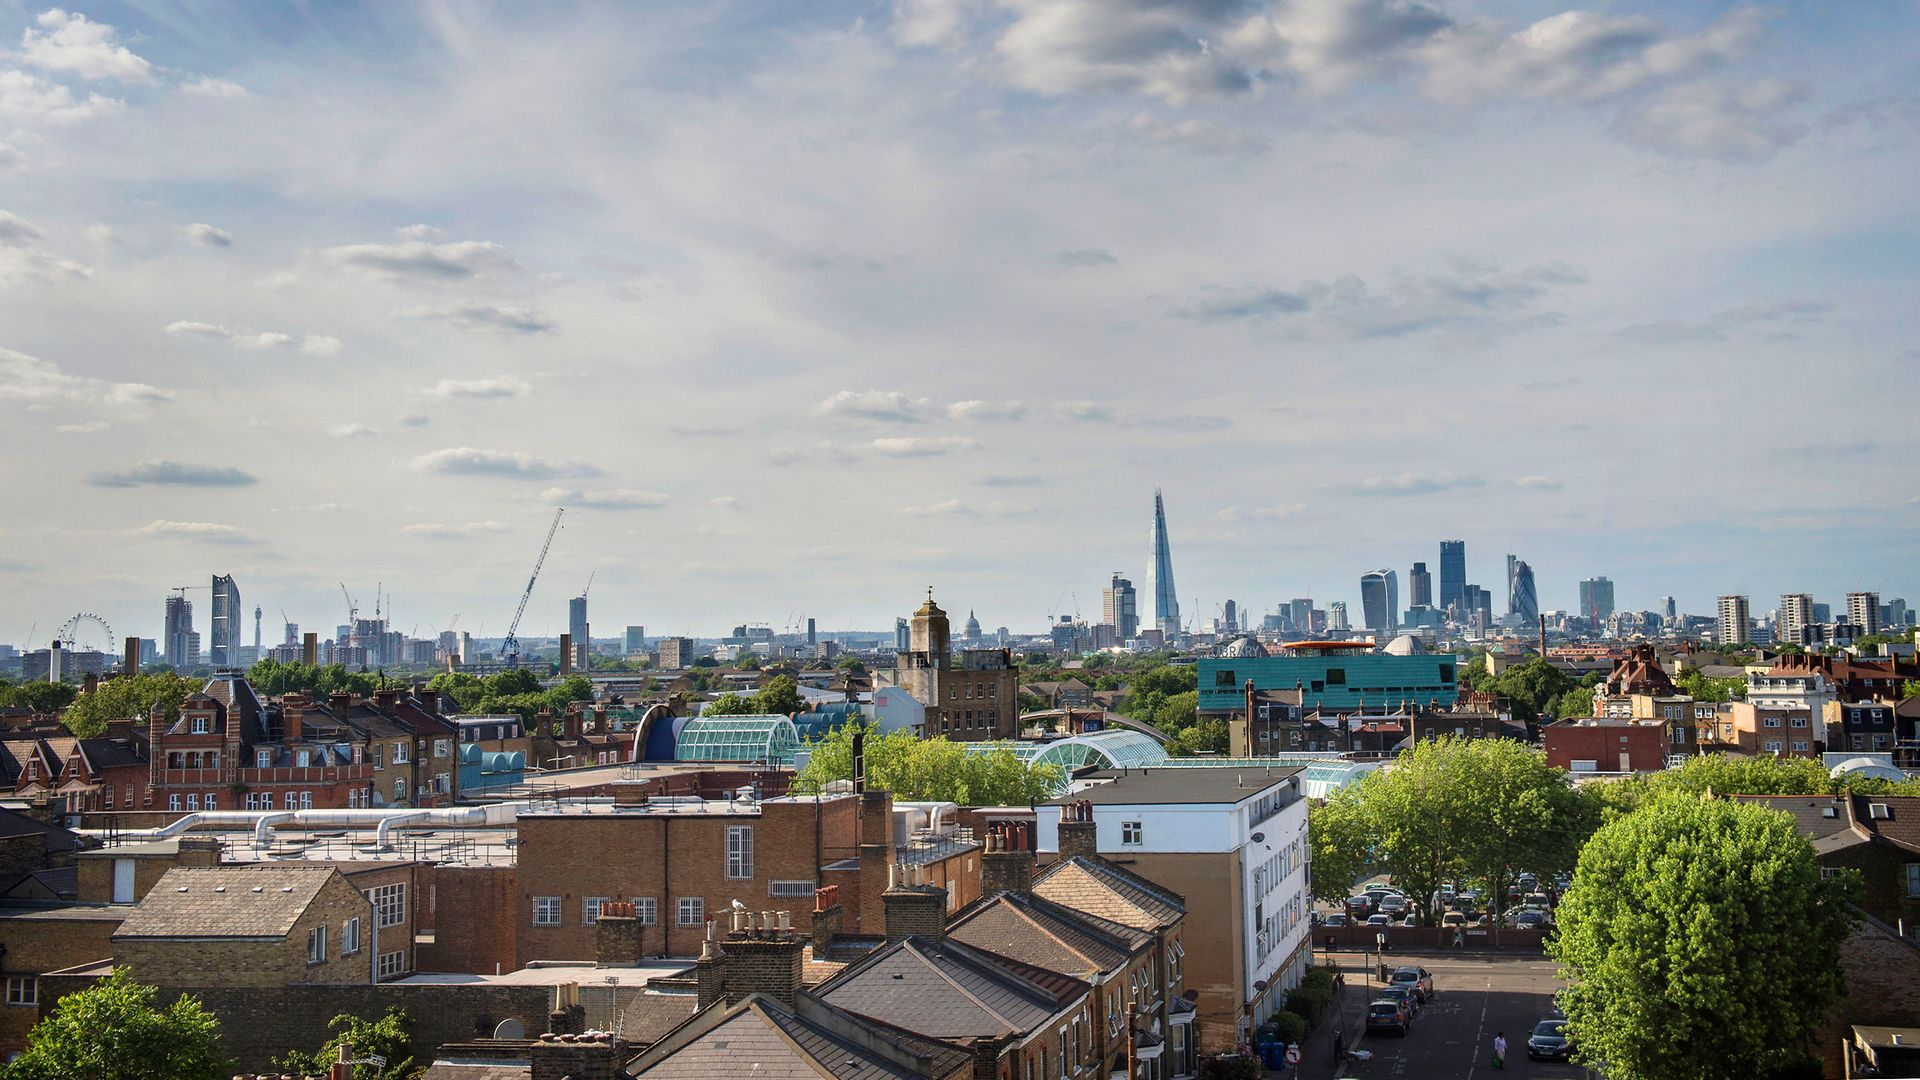 A view of the London skyline seen from Peckham - Credit: PA